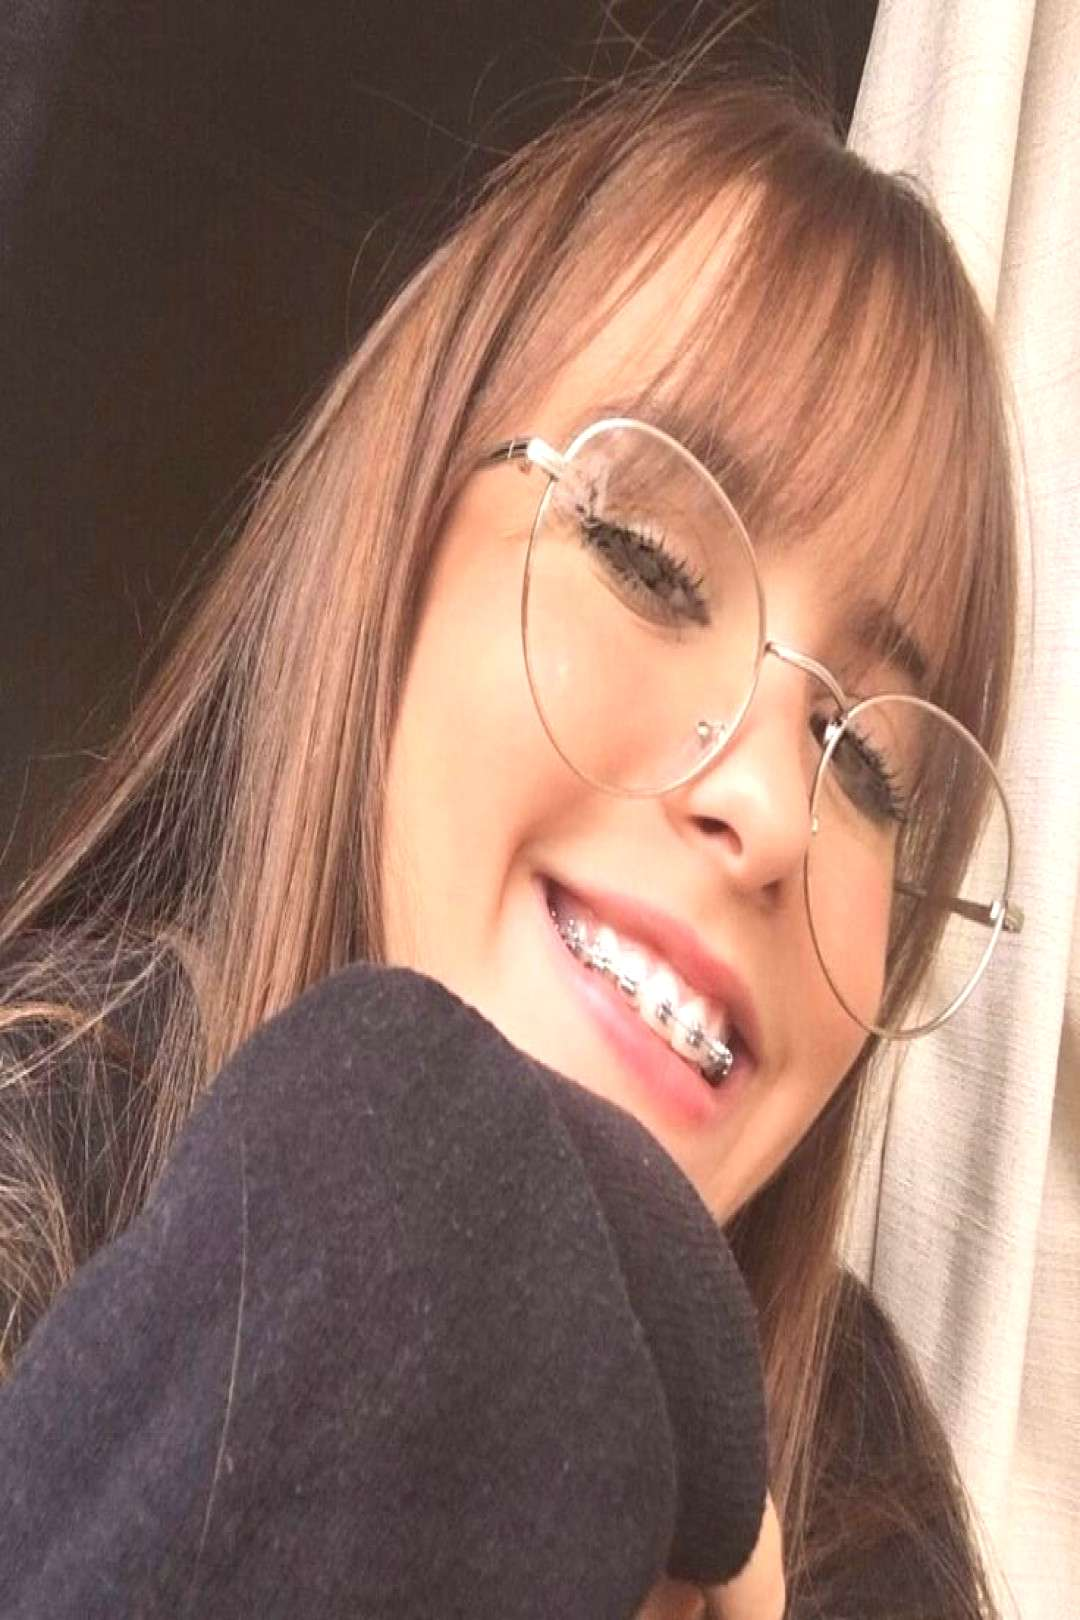 Girls With Braces And Glasses | Girls With Braces girls with braces and glasses - girls with braces